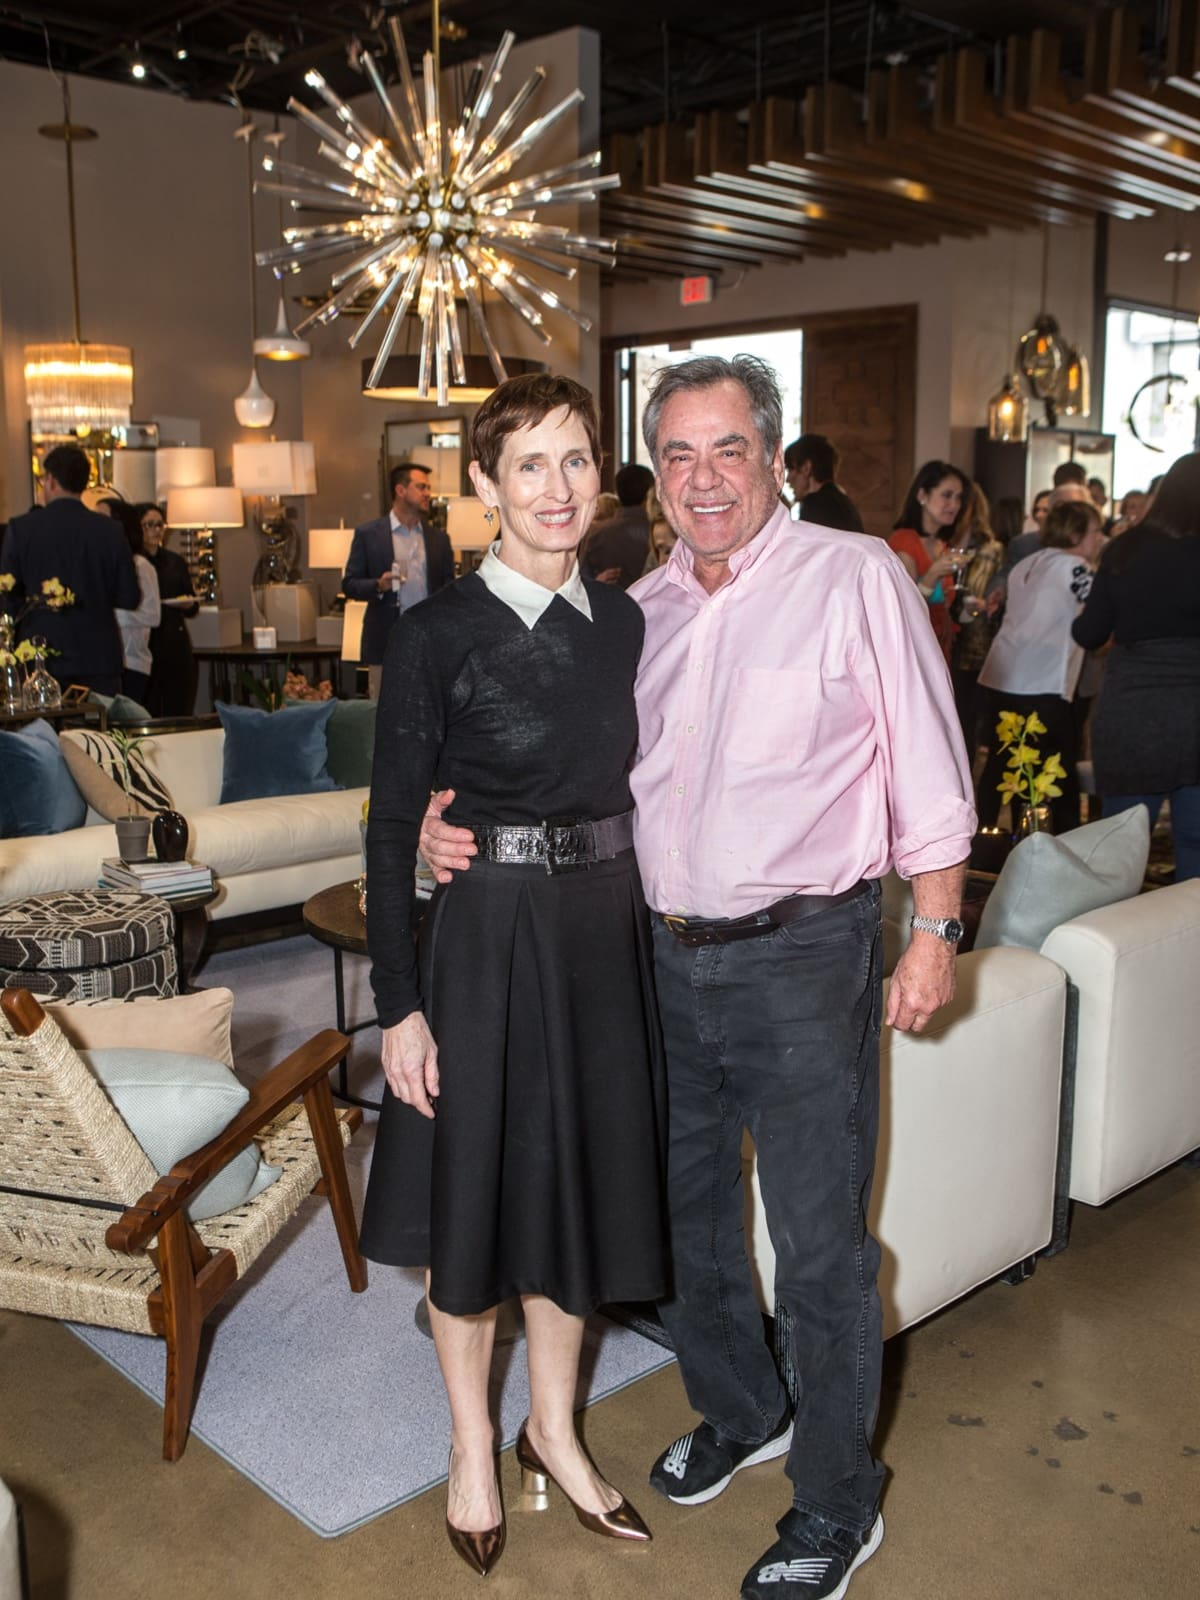 Robert and Meaders Ozarow, Empire Baking, Arteriors Party 2018